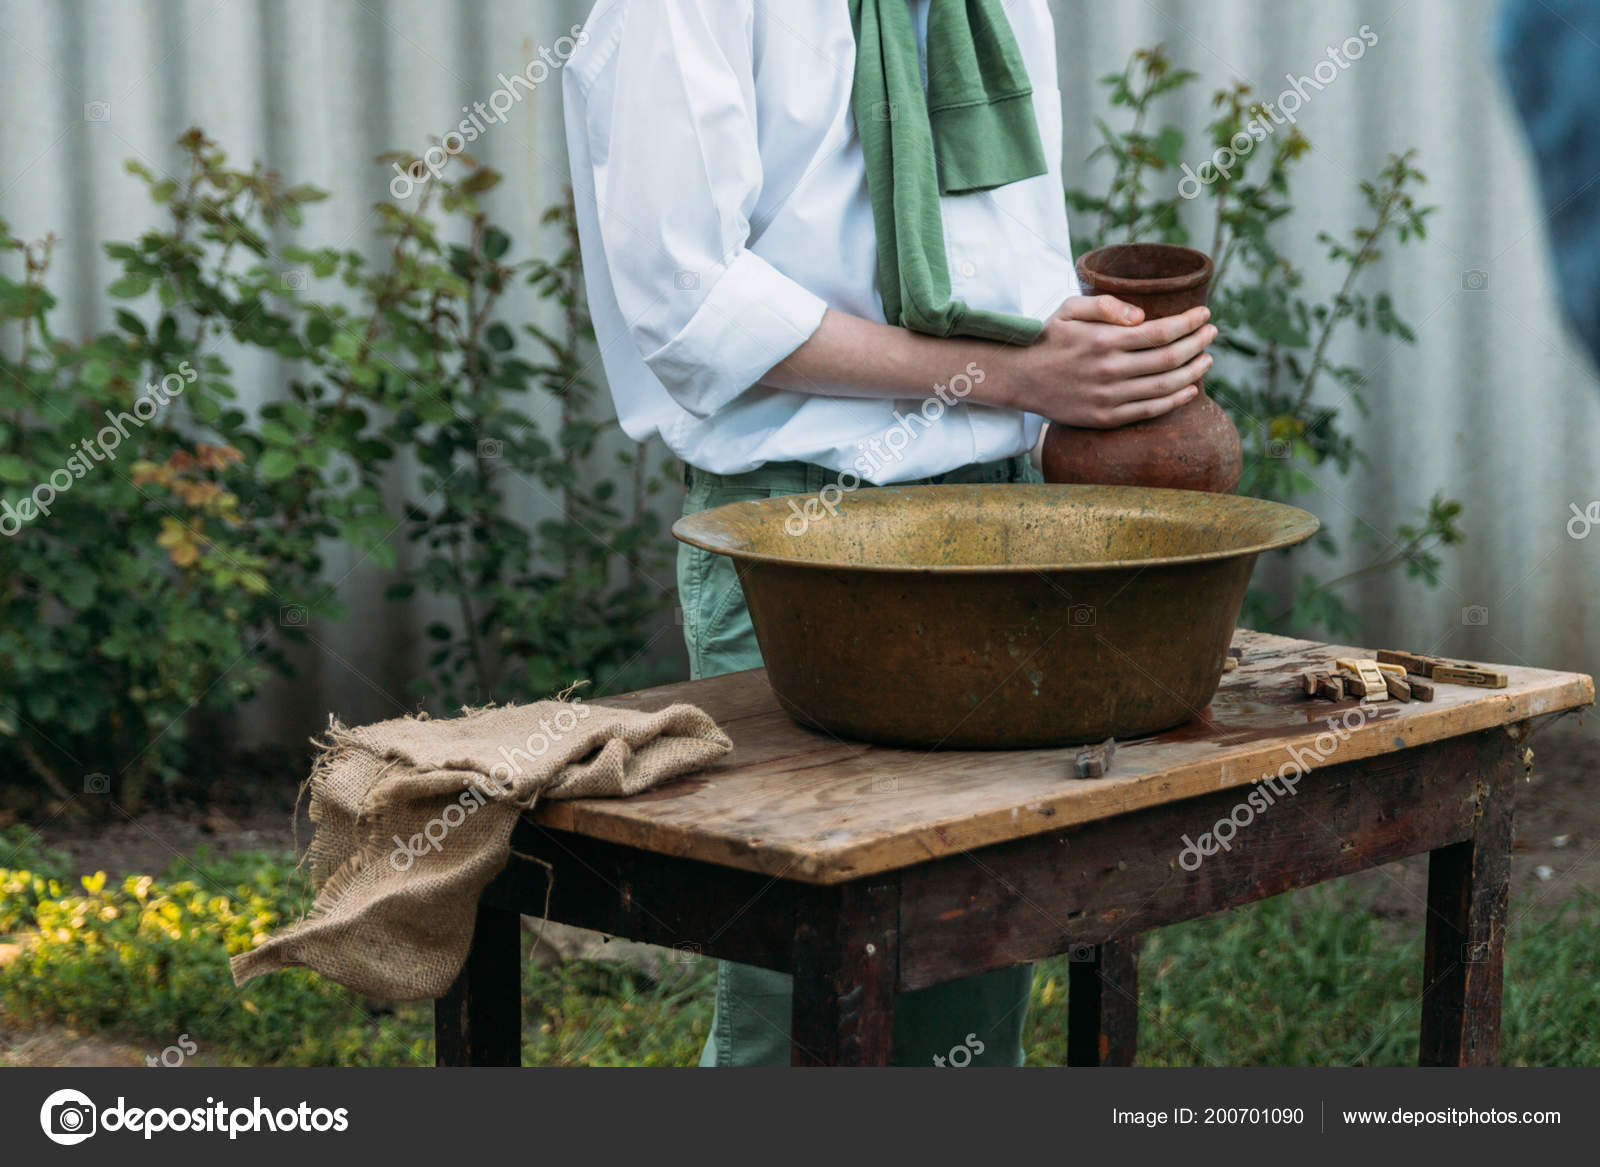 Boy White Shirt Green Sweater Holds Clay Jug Pours Water